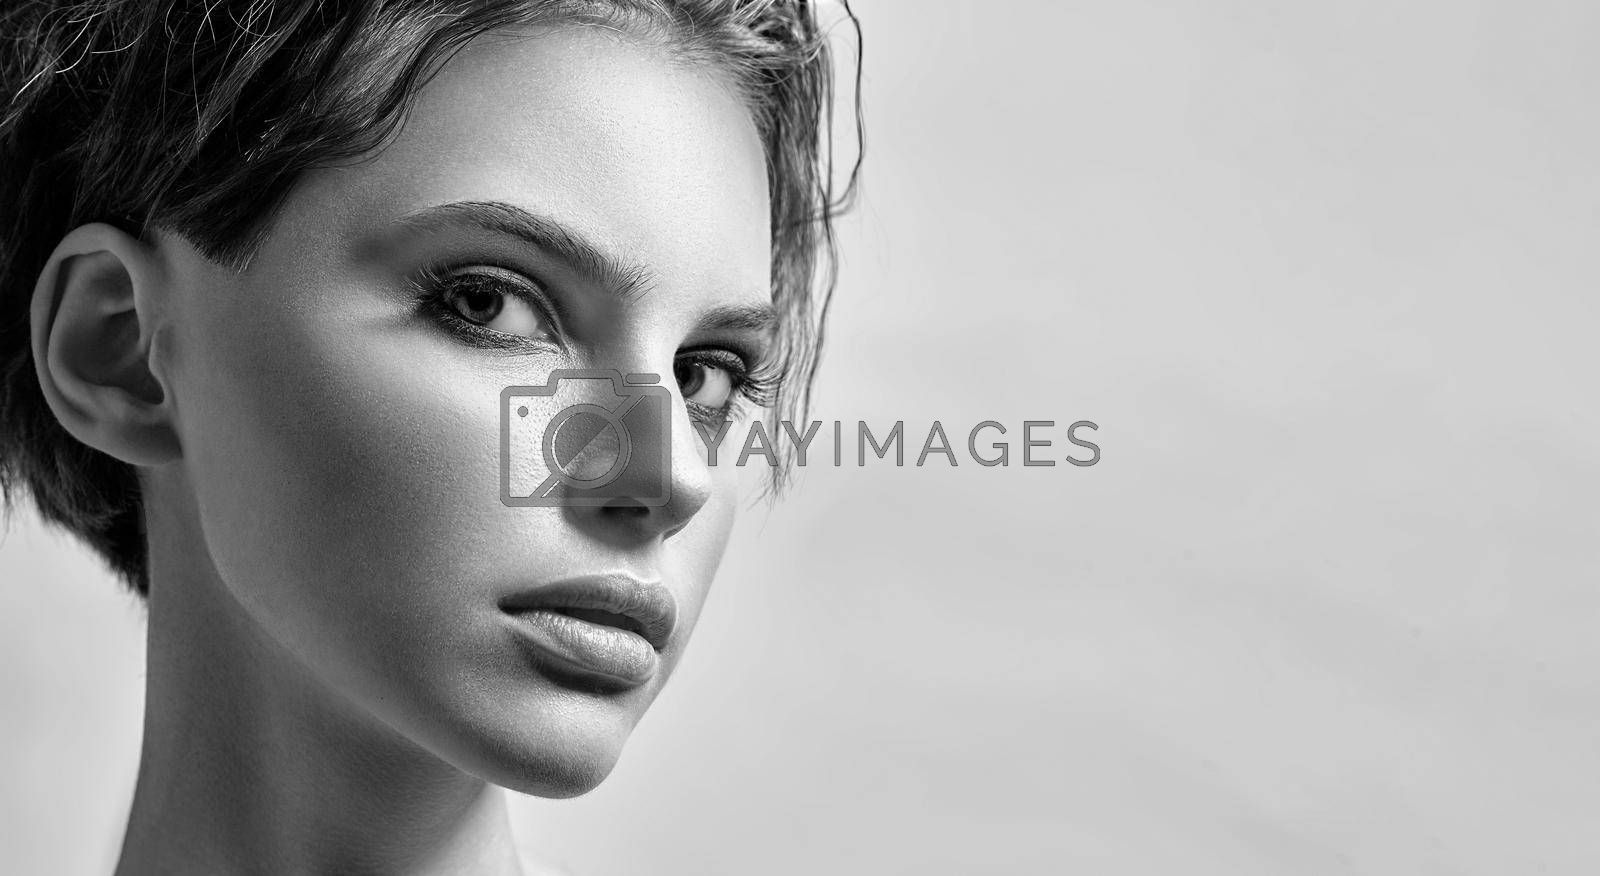 Monochrome portrait of a young attractive woman in the studio on a light background